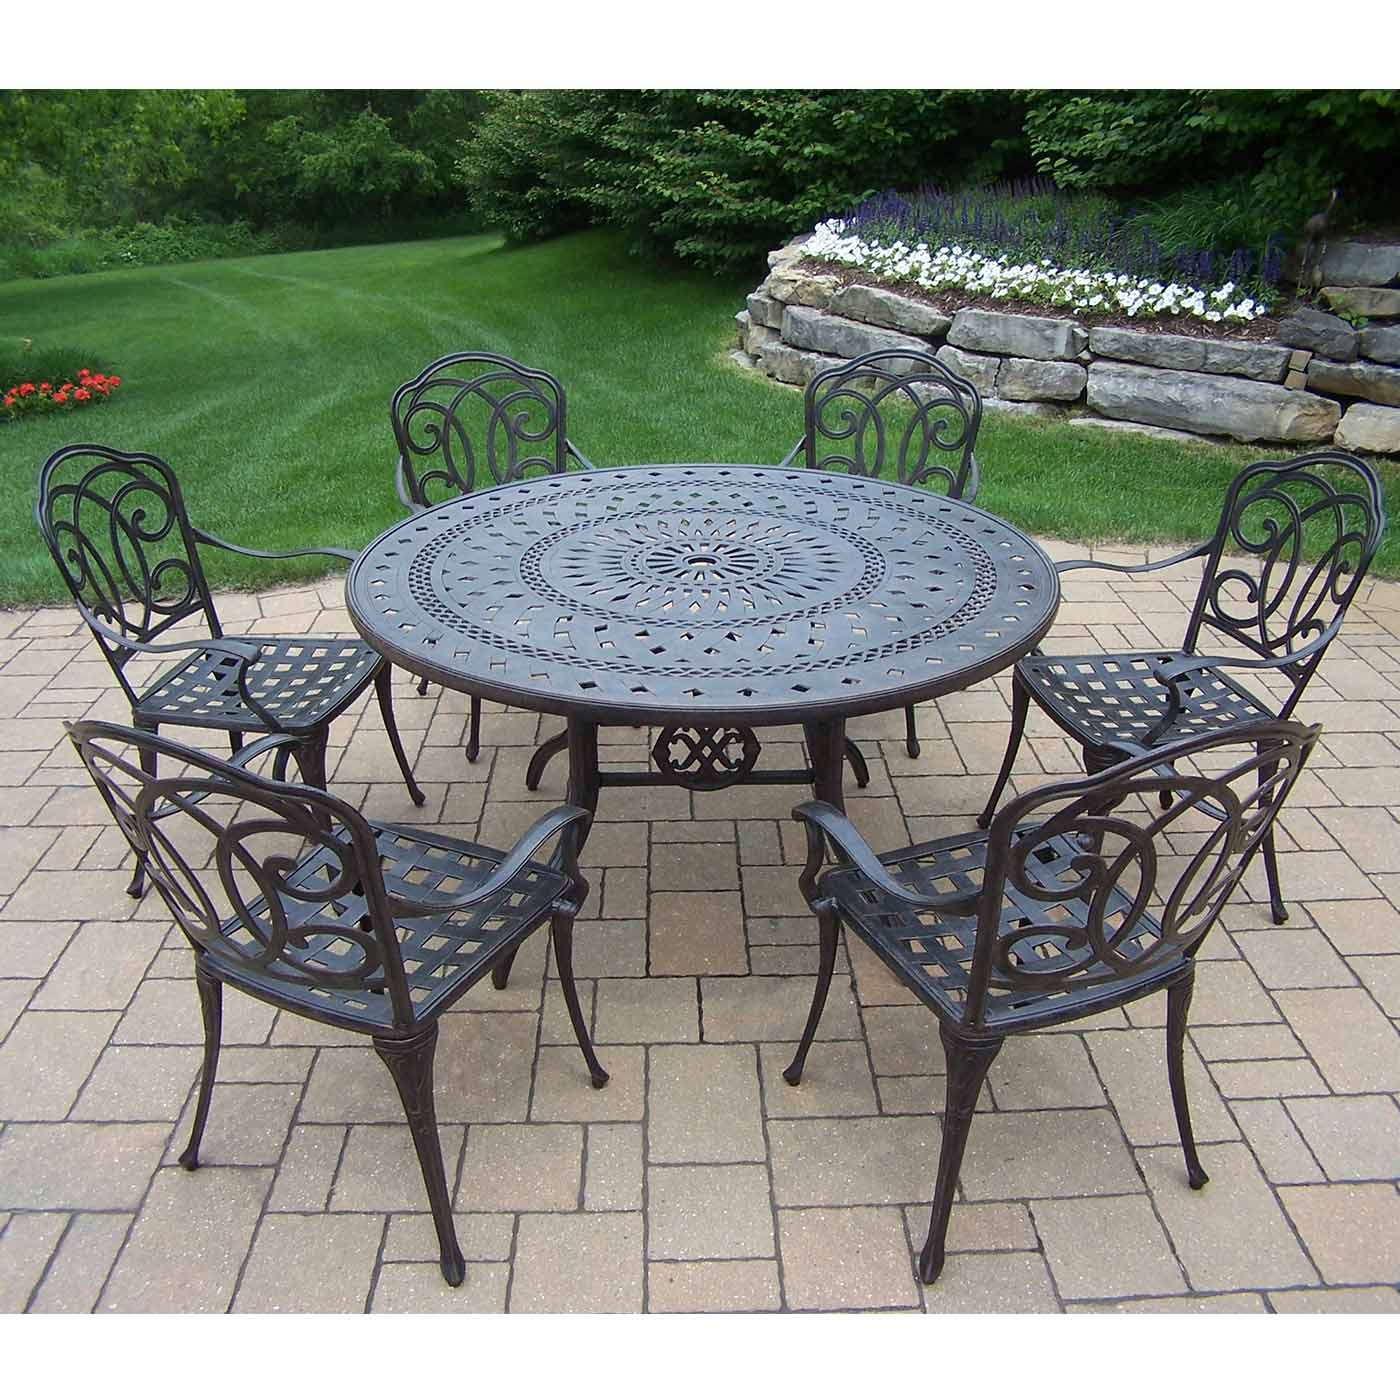 Oakland Living Berkley Piece Aged Patio Set With Round Table - 7 piece outdoor dining set round table